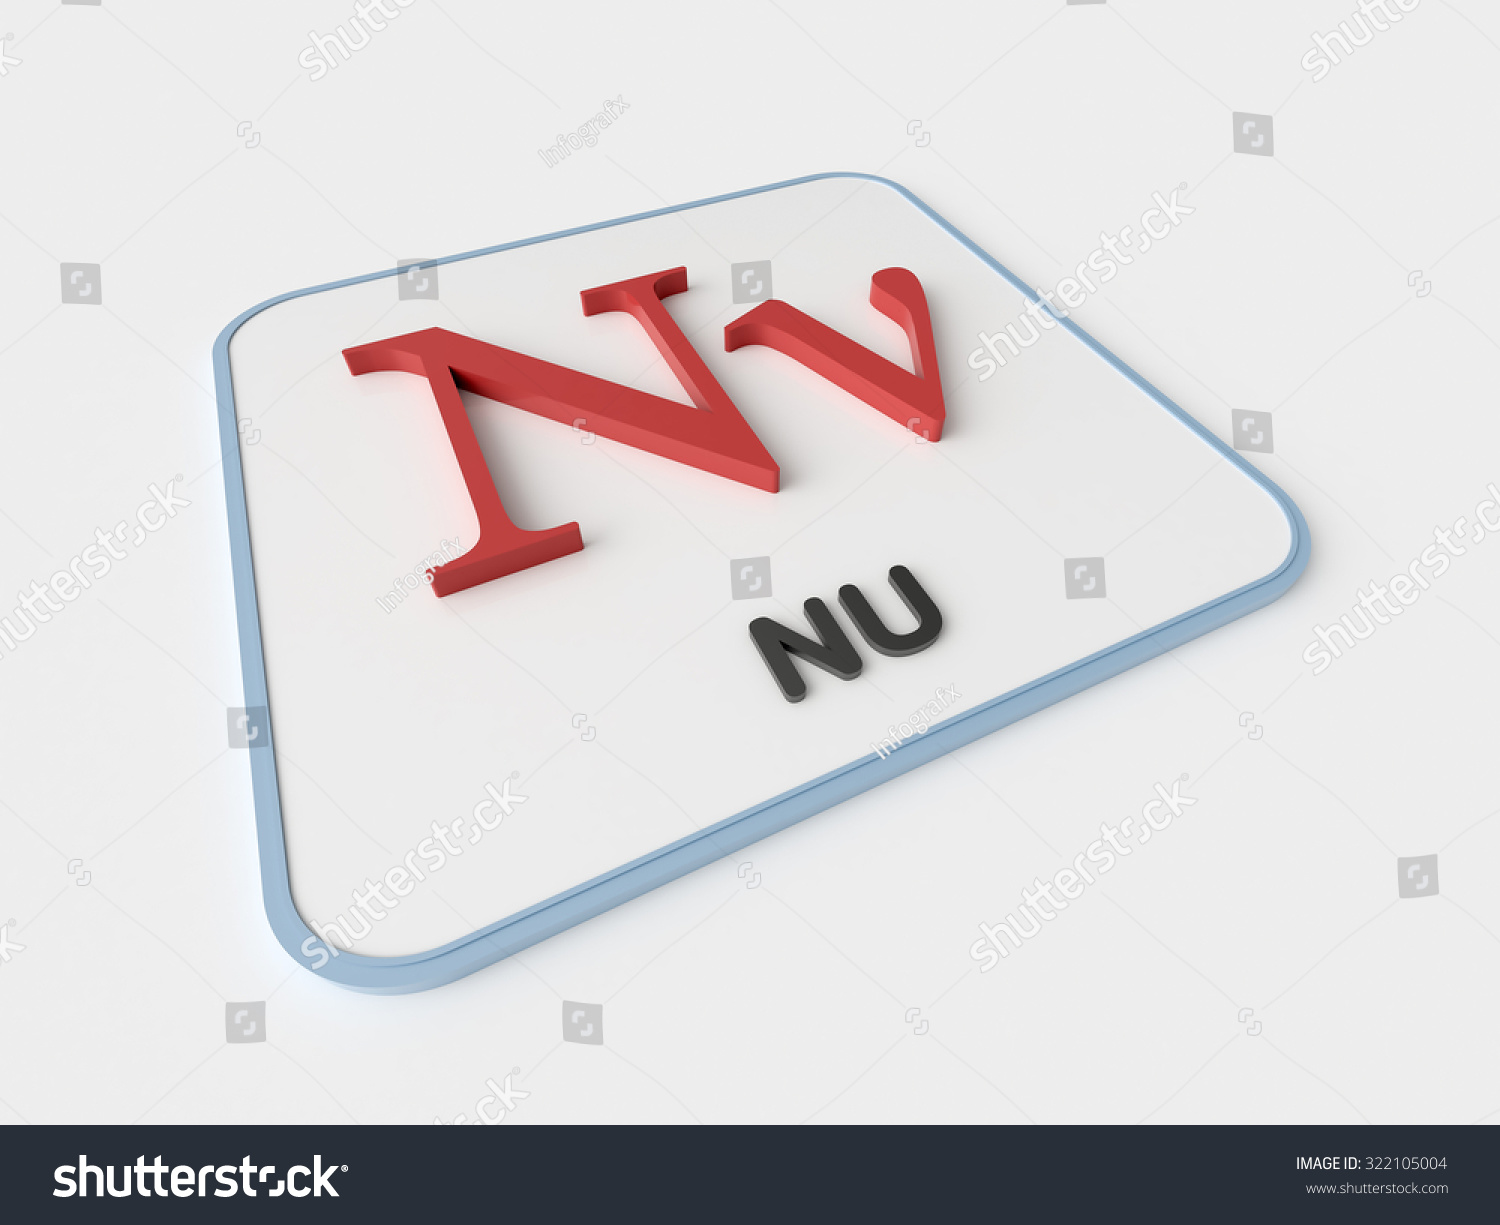 Nu greek symbol choice image symbol and sign ideas nu greek symbol on white display stock illustration 322105004 nu greek symbol on white display board urtaz Gallery